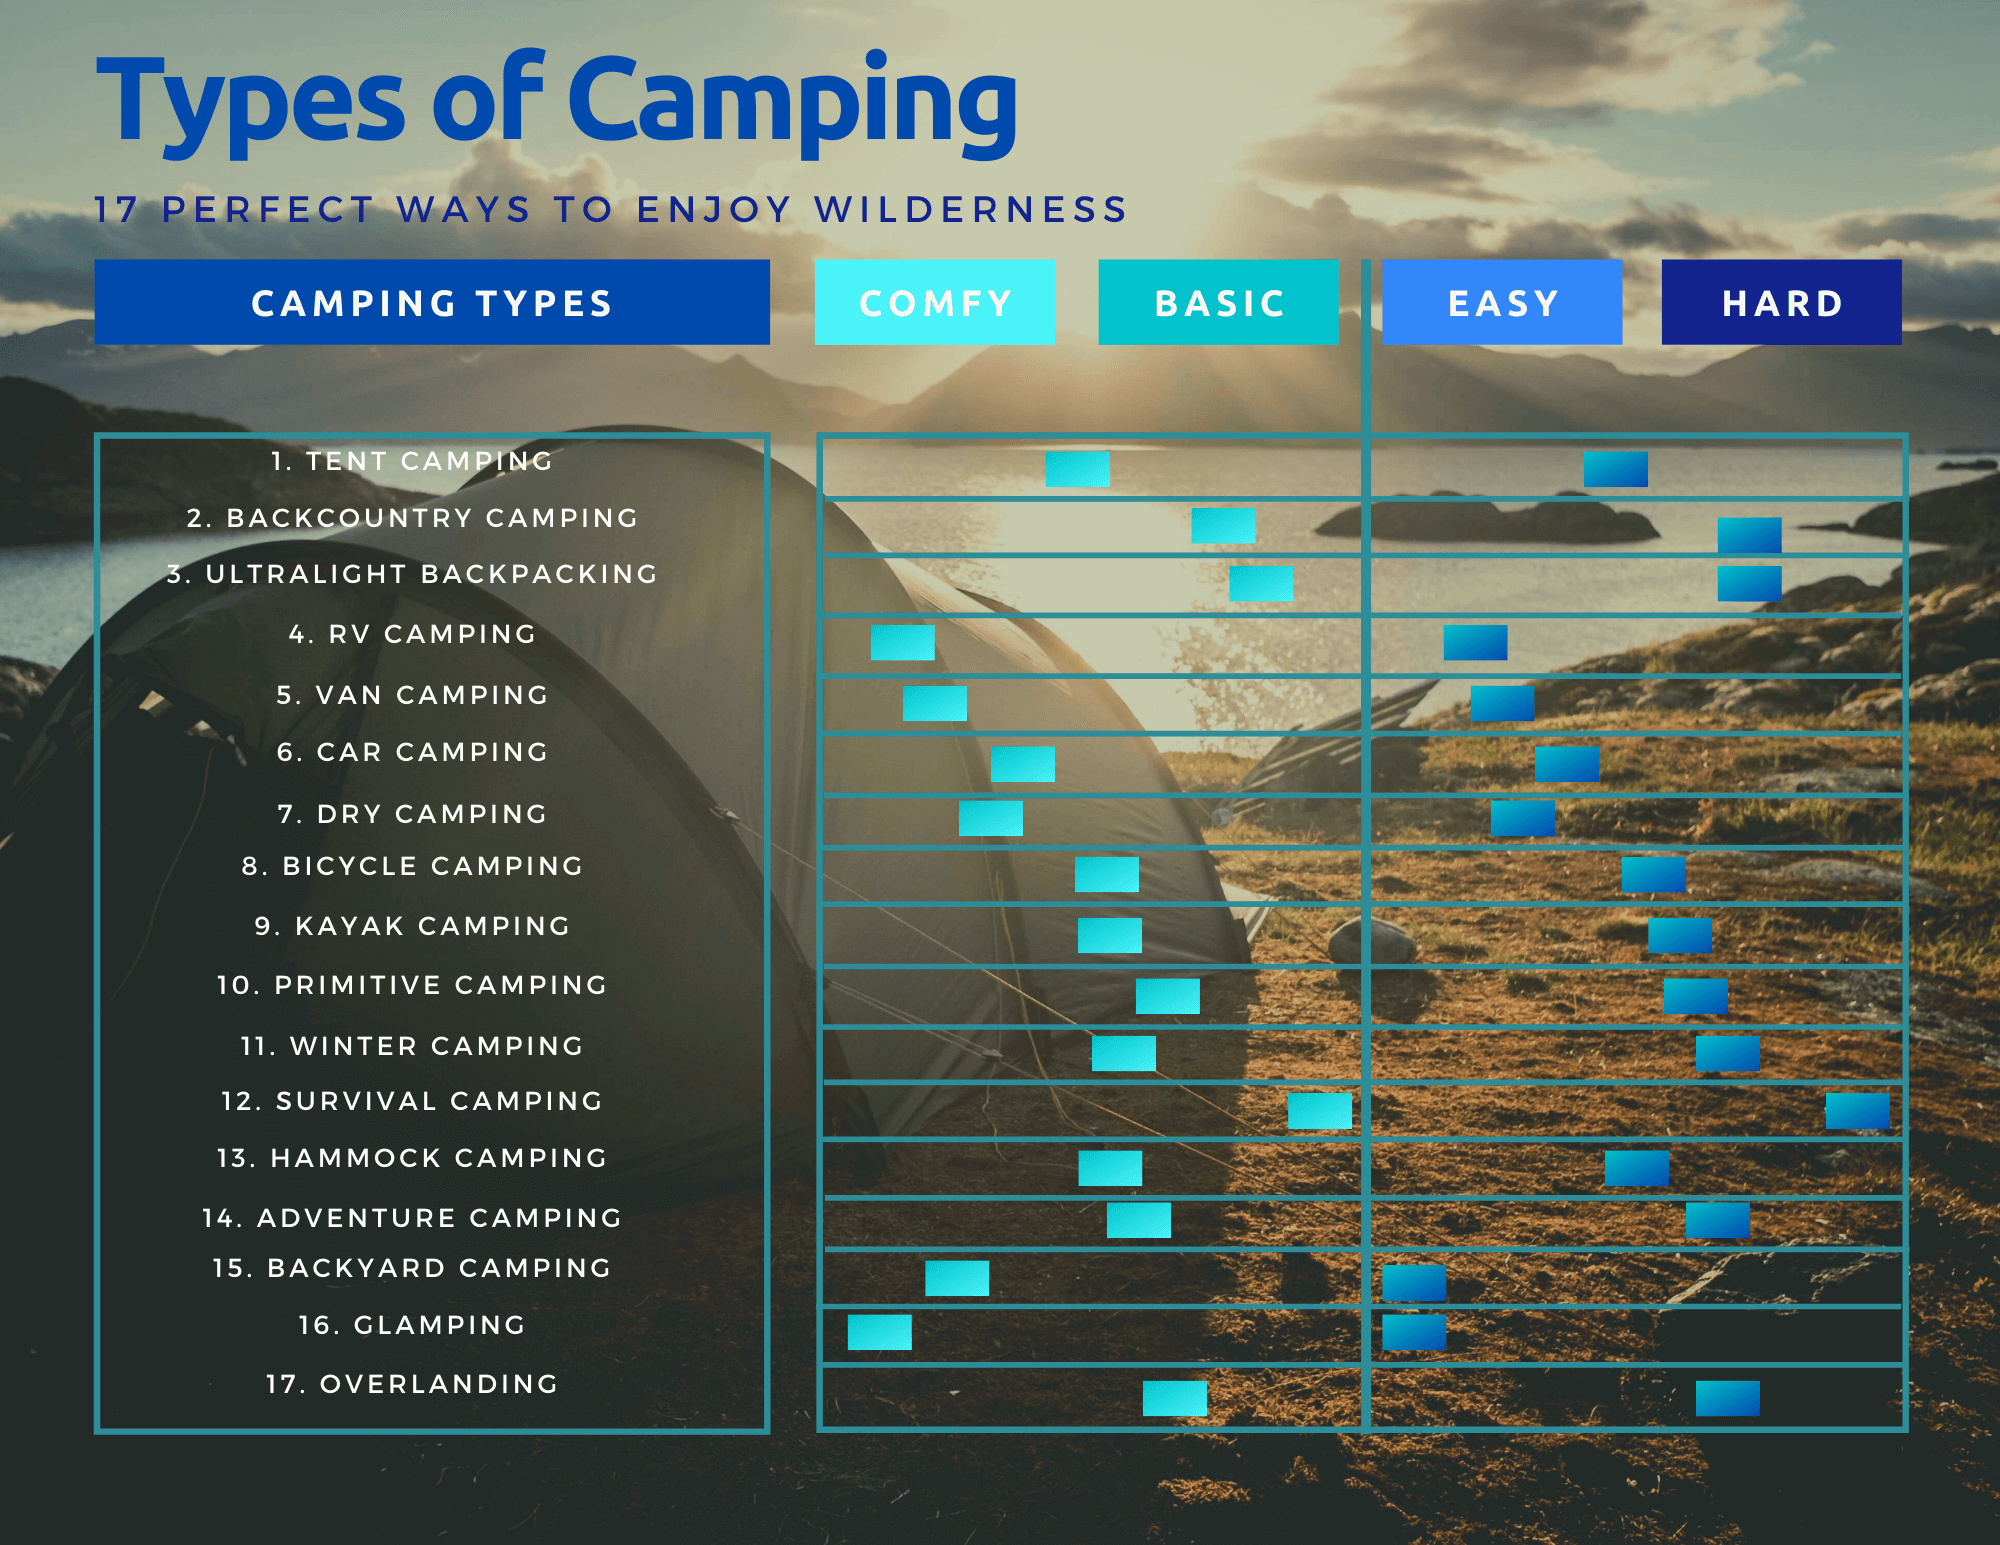 Types of Camping: 17 Perfect Ways to Enjoy Wilderness